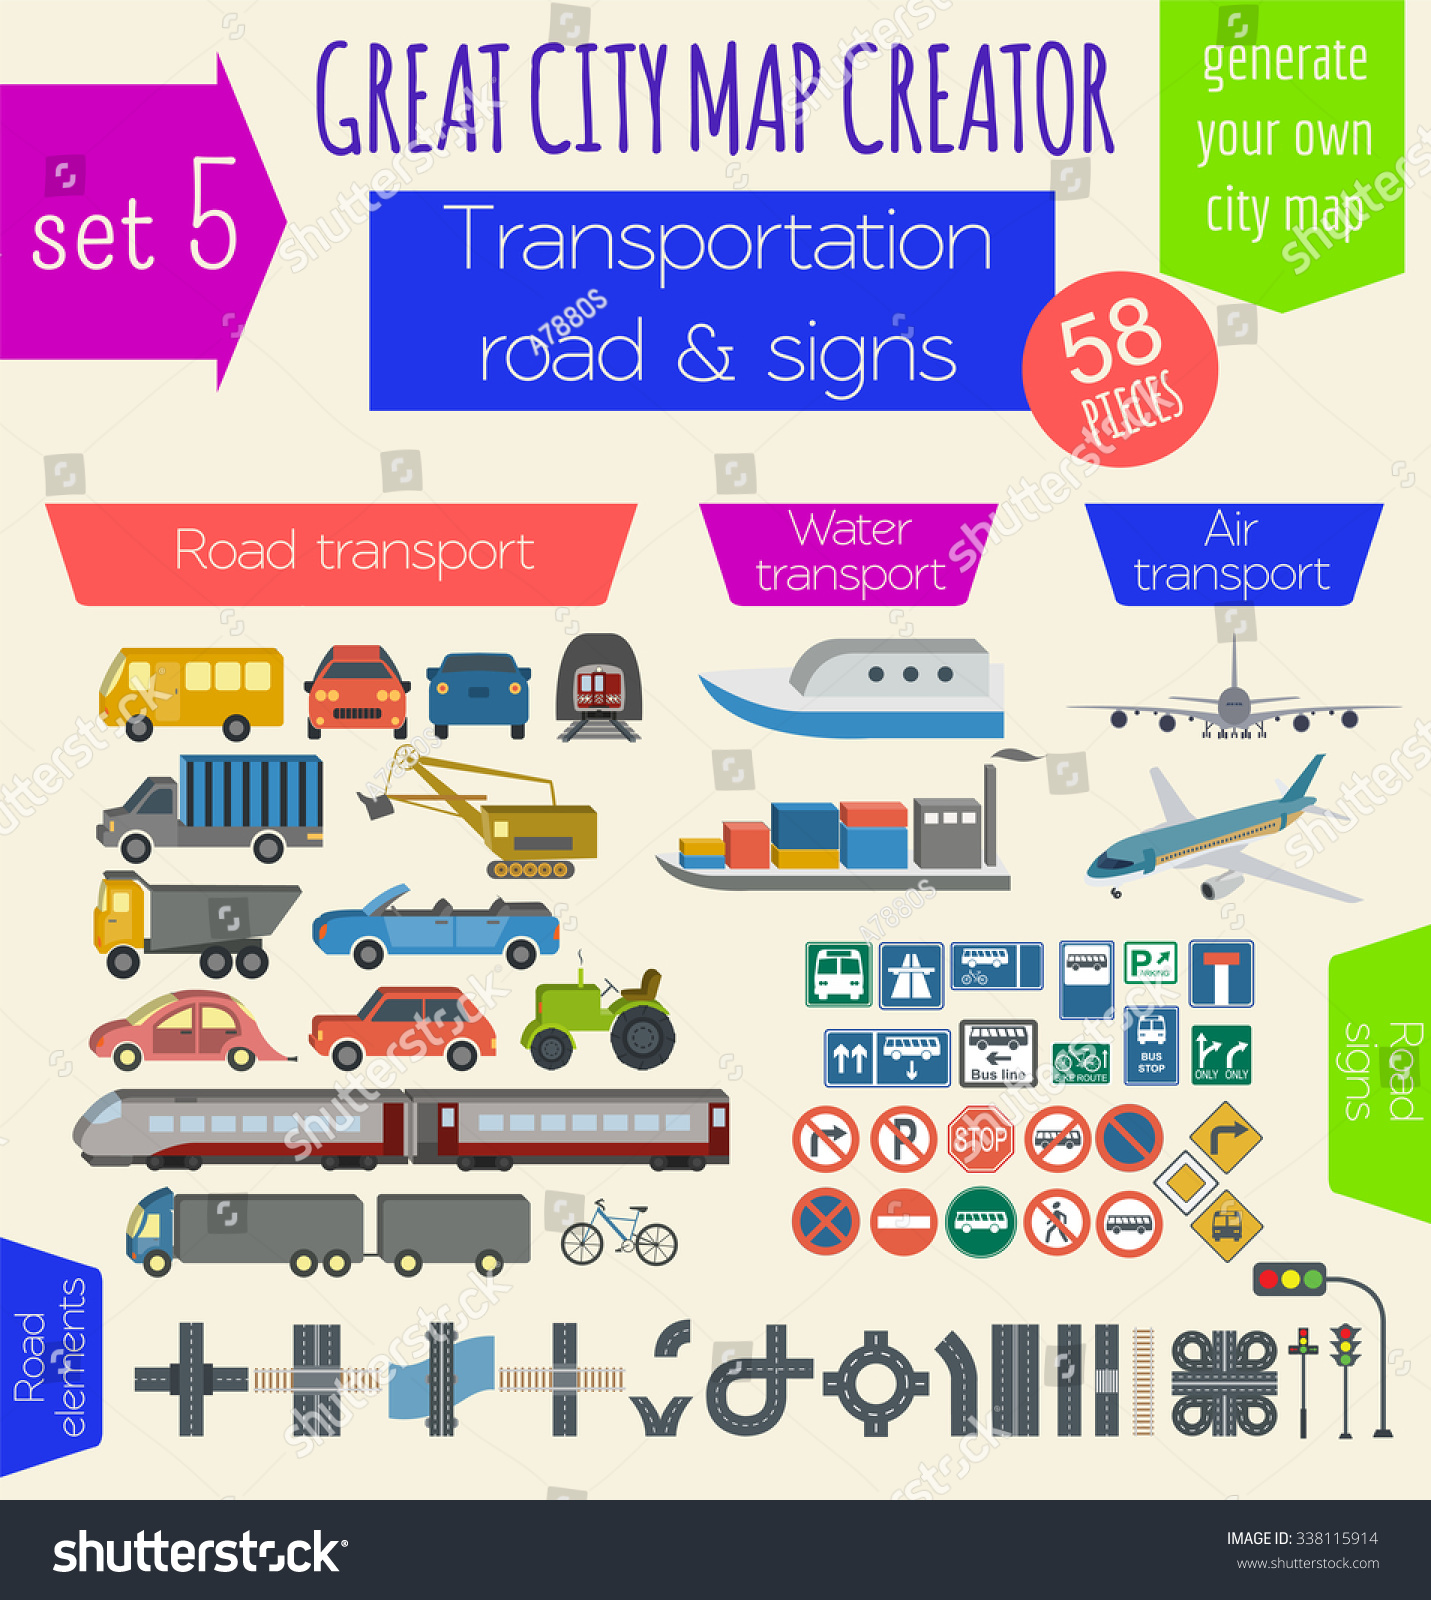 Great city map creator house constructor stock vector for House map creator